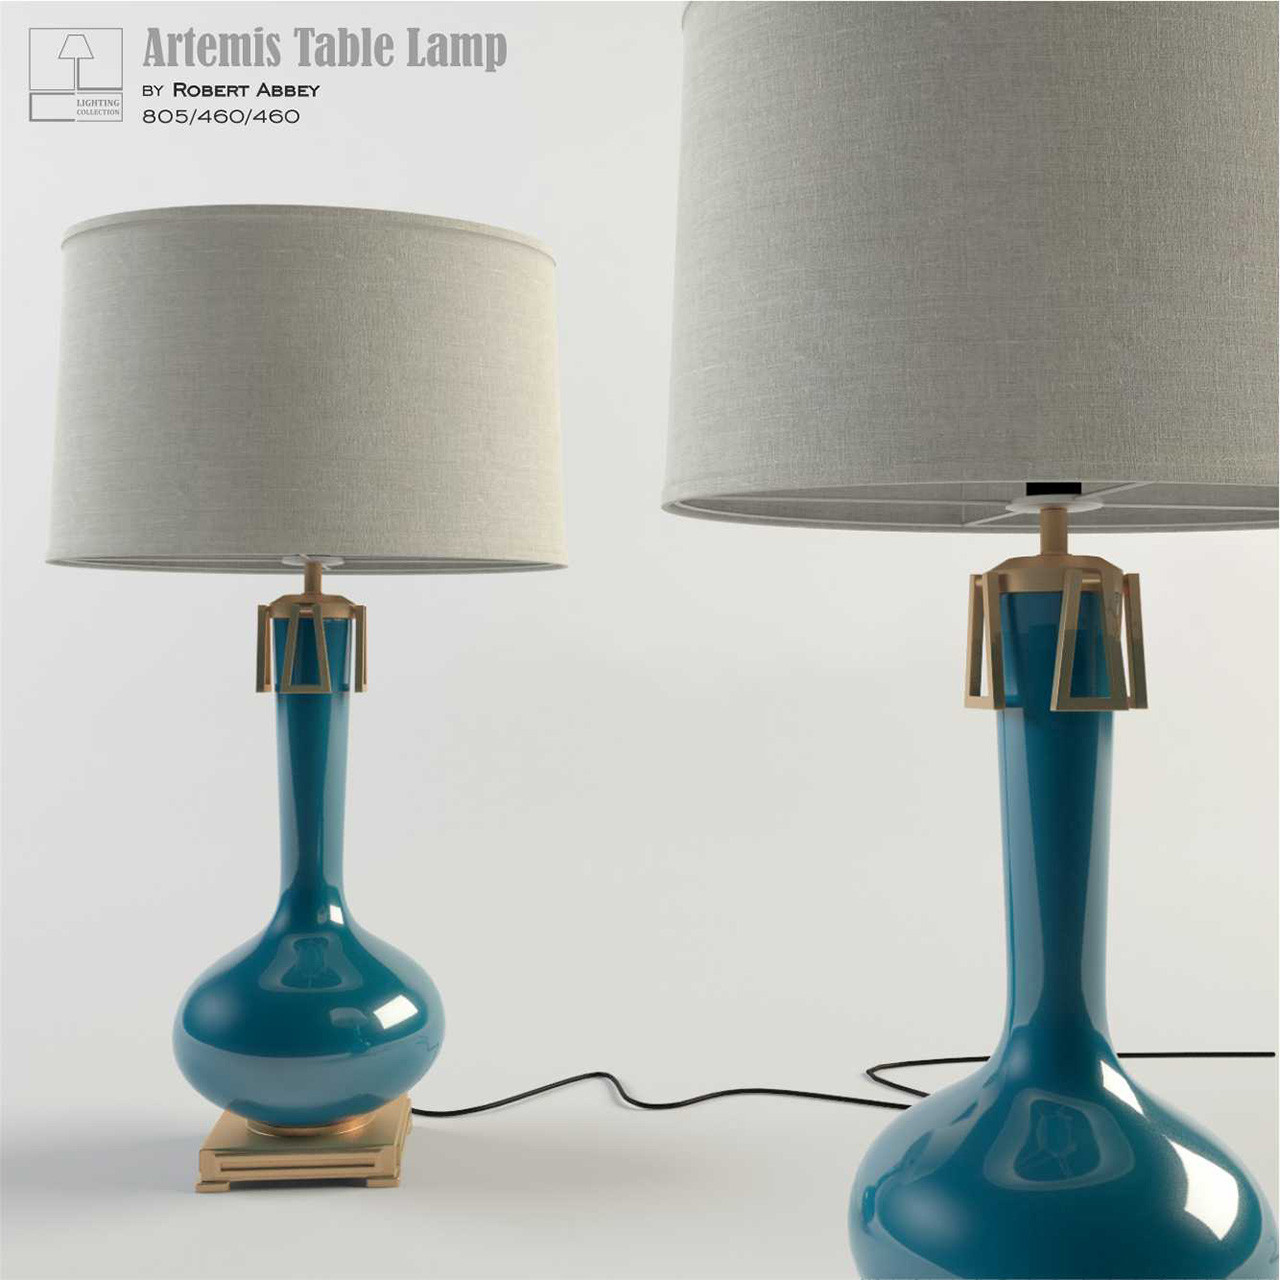 Fillable glass table lamp uk best inspiration for table lamp artemis design table lamp geotapseo Image collections